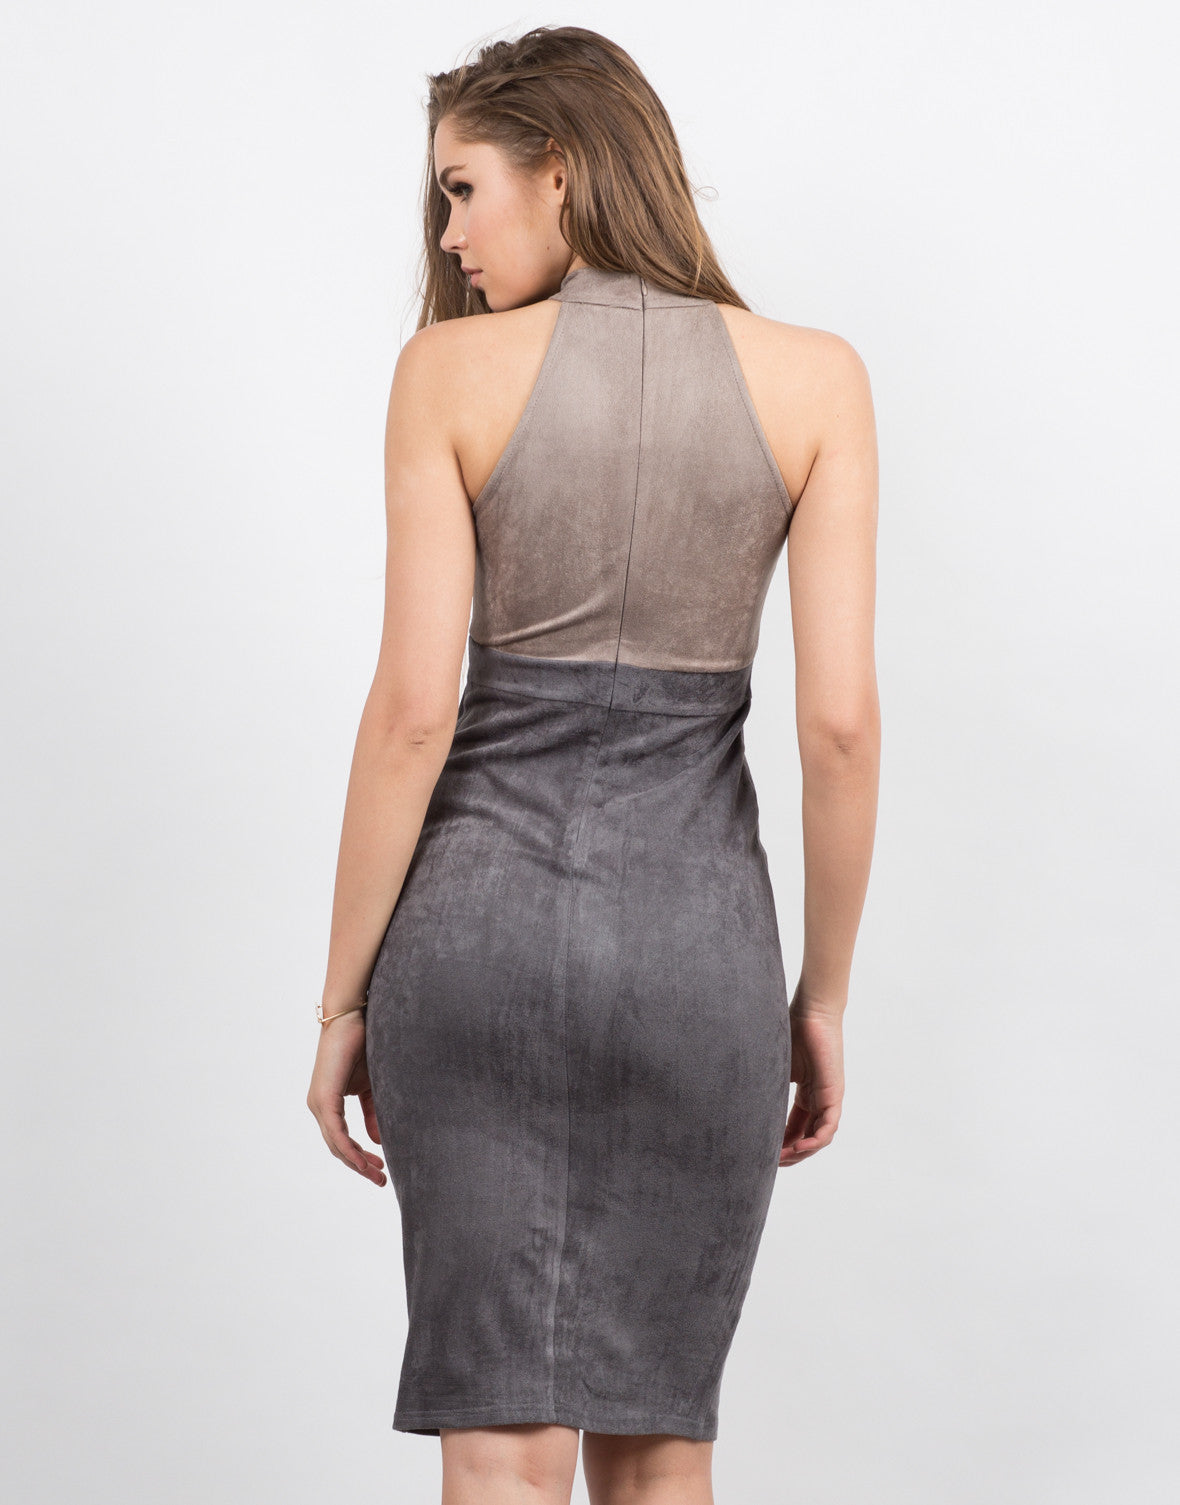 Back View of Suede Colorblock Dress